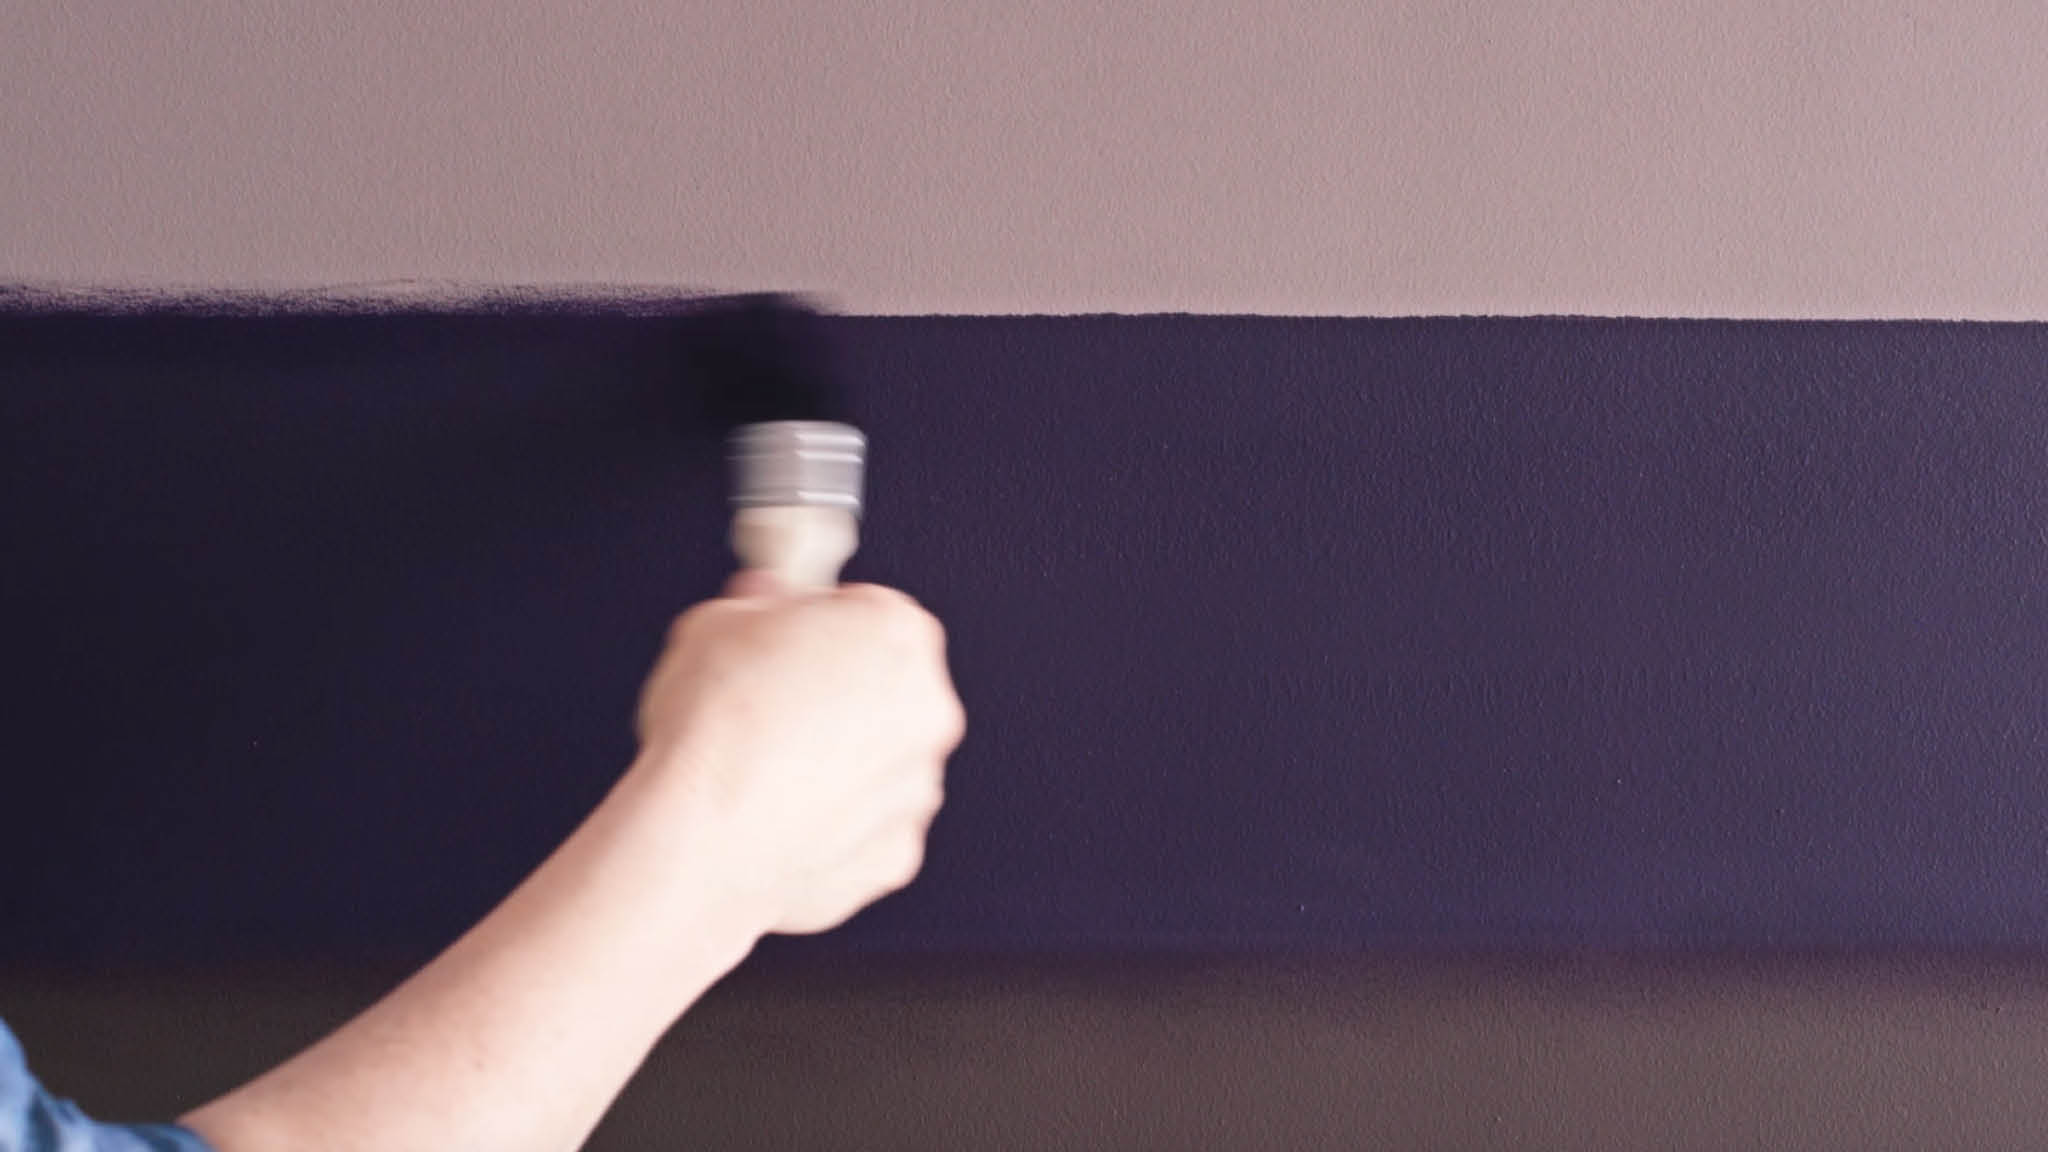 Use a dry paintbrush to create your blurred line